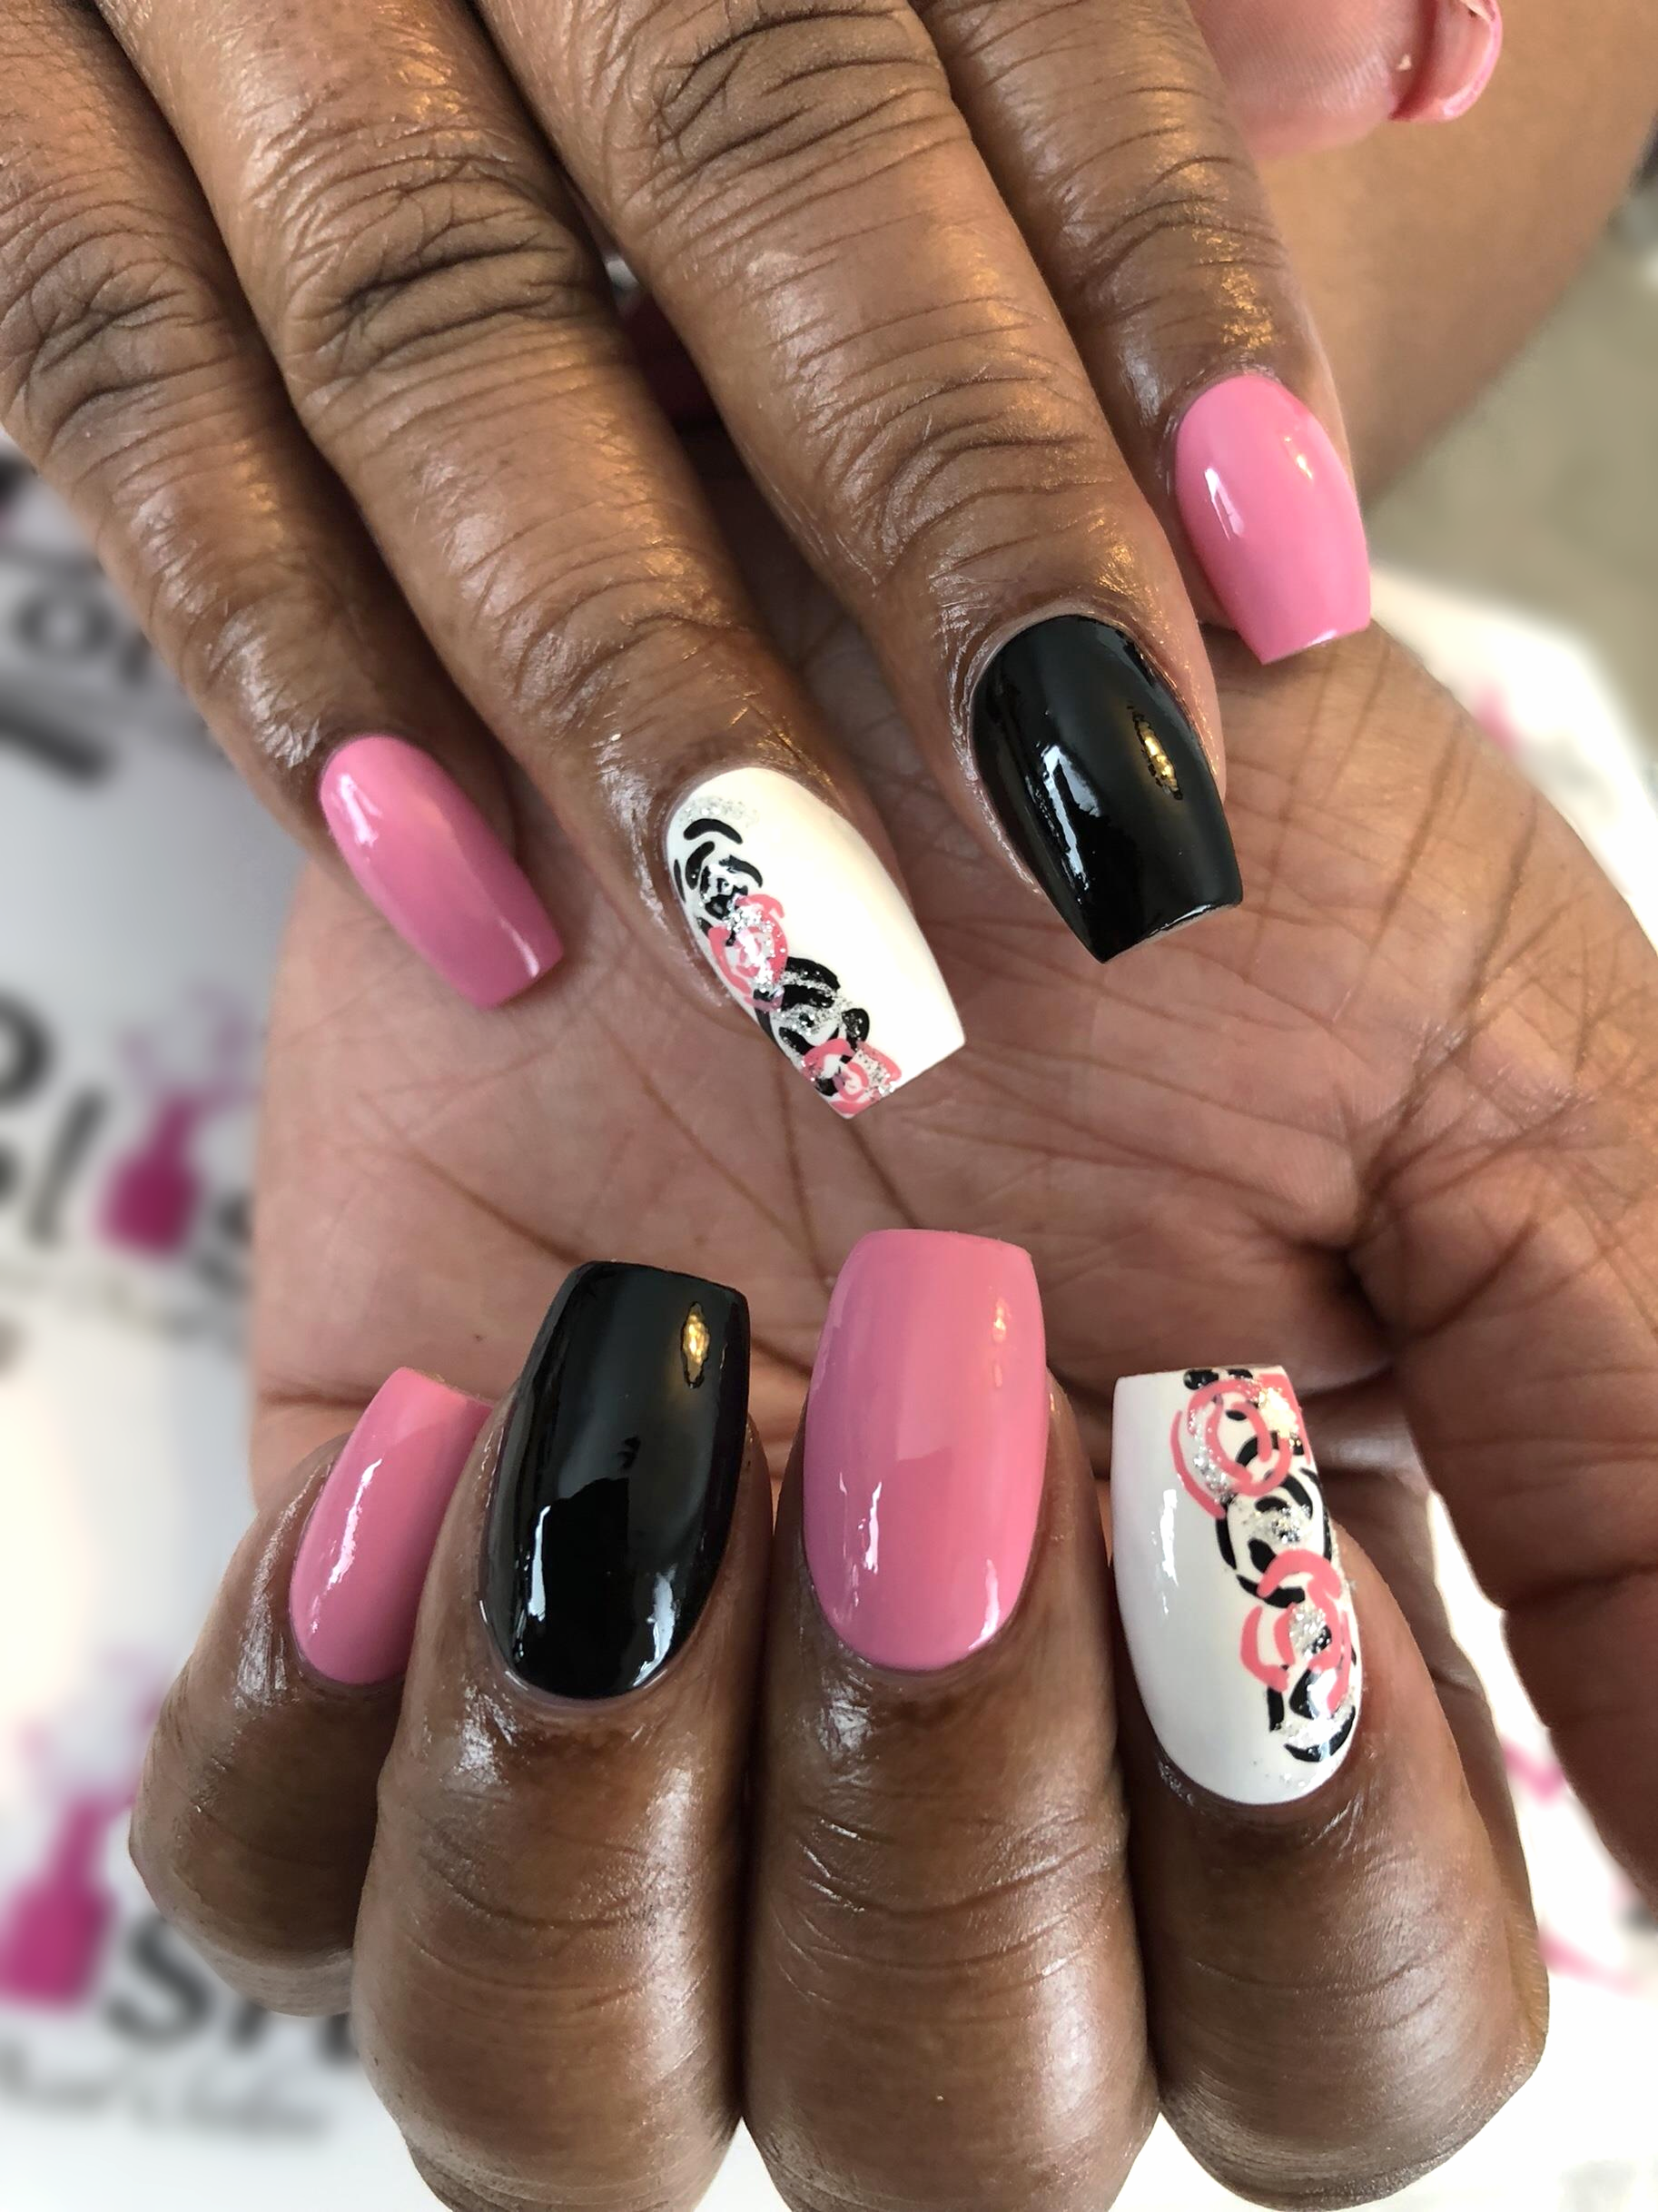 Fill In W Designs 40 Pink And Black Acrylic Nail With Rose Designs Black Acrylic Nails Manicure Pedicure Nail Art